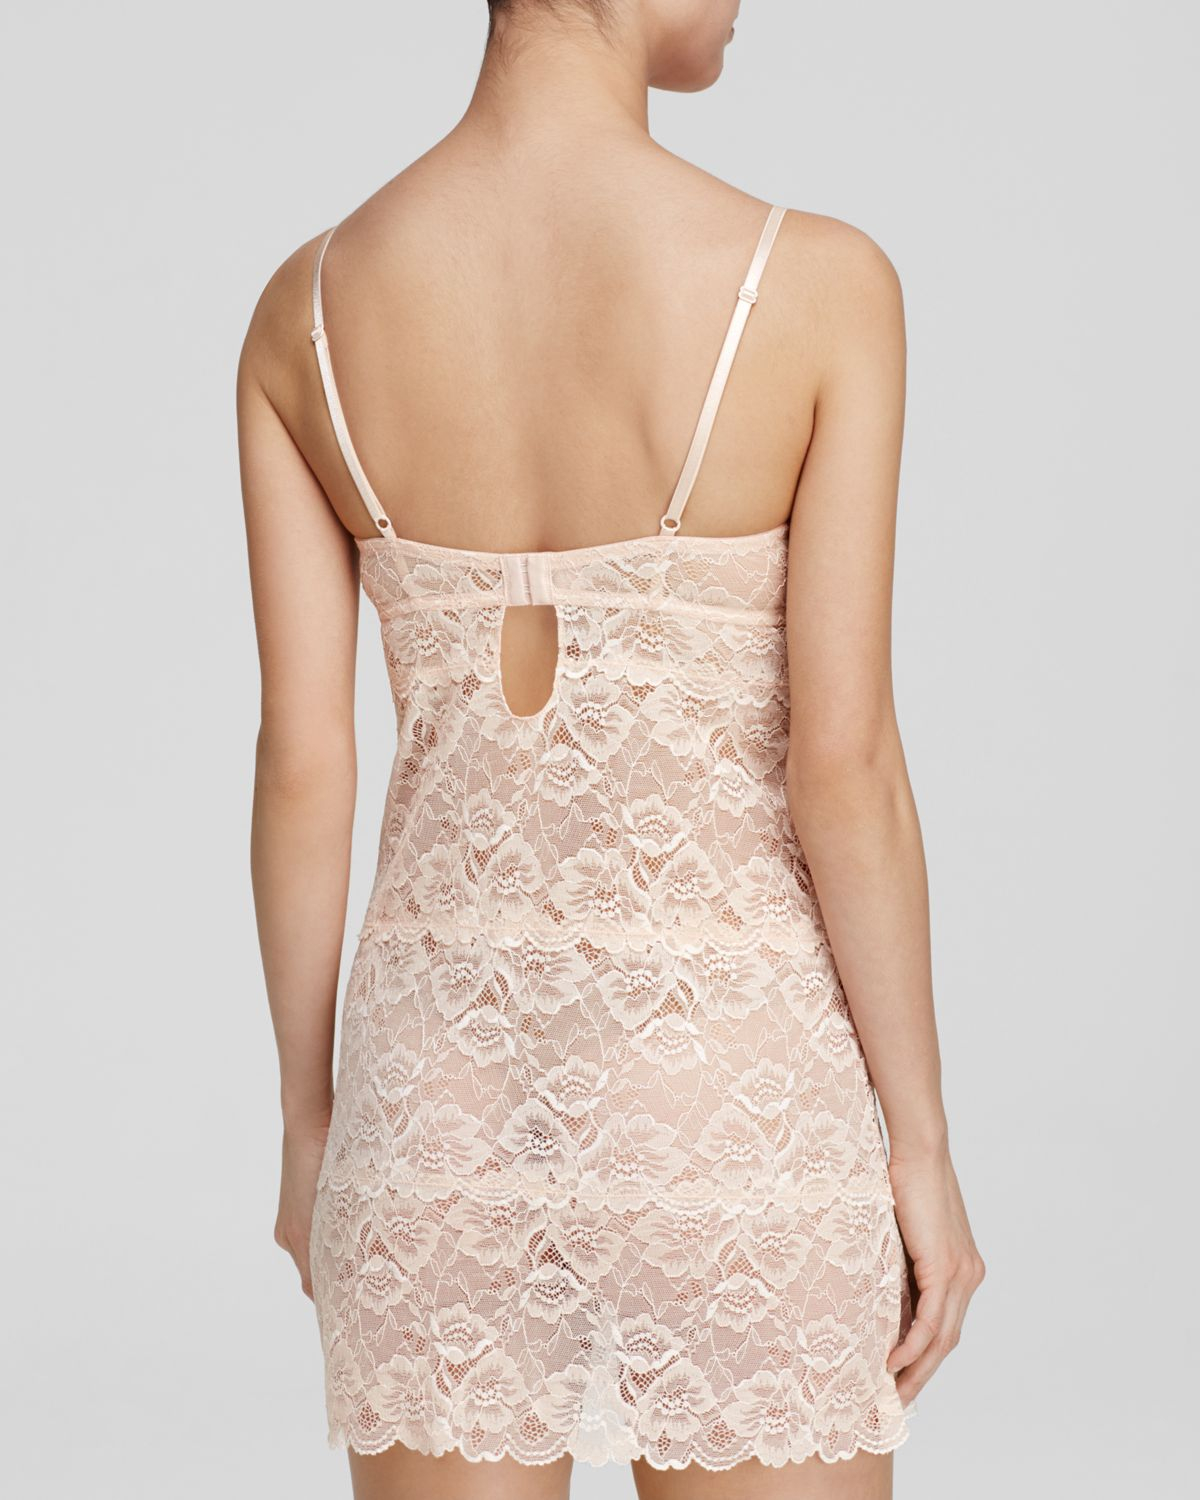 Blush Lingerie Blush Chemise - Sweetest Sin In Pink